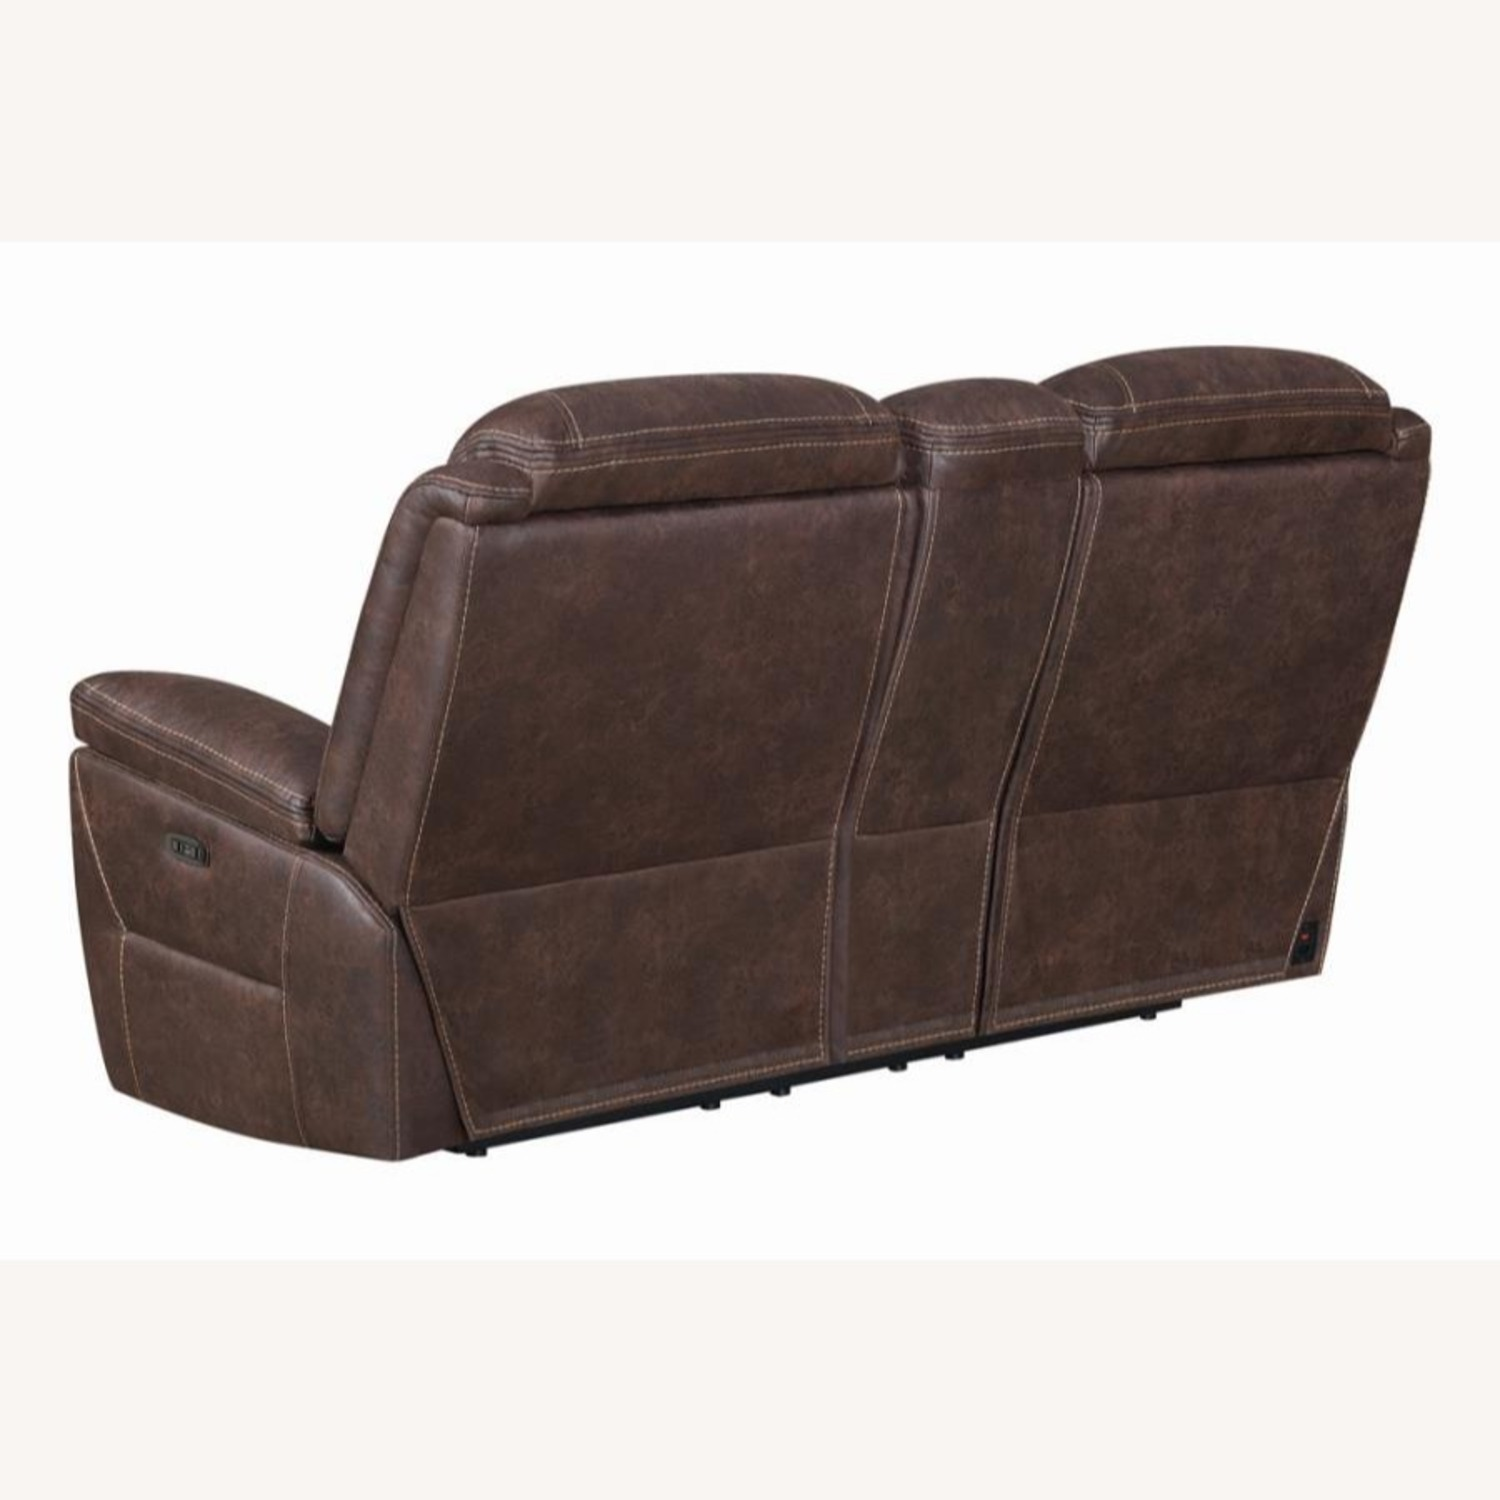 Power Loveseat Recliner In Chocolate Upholstery - image-3